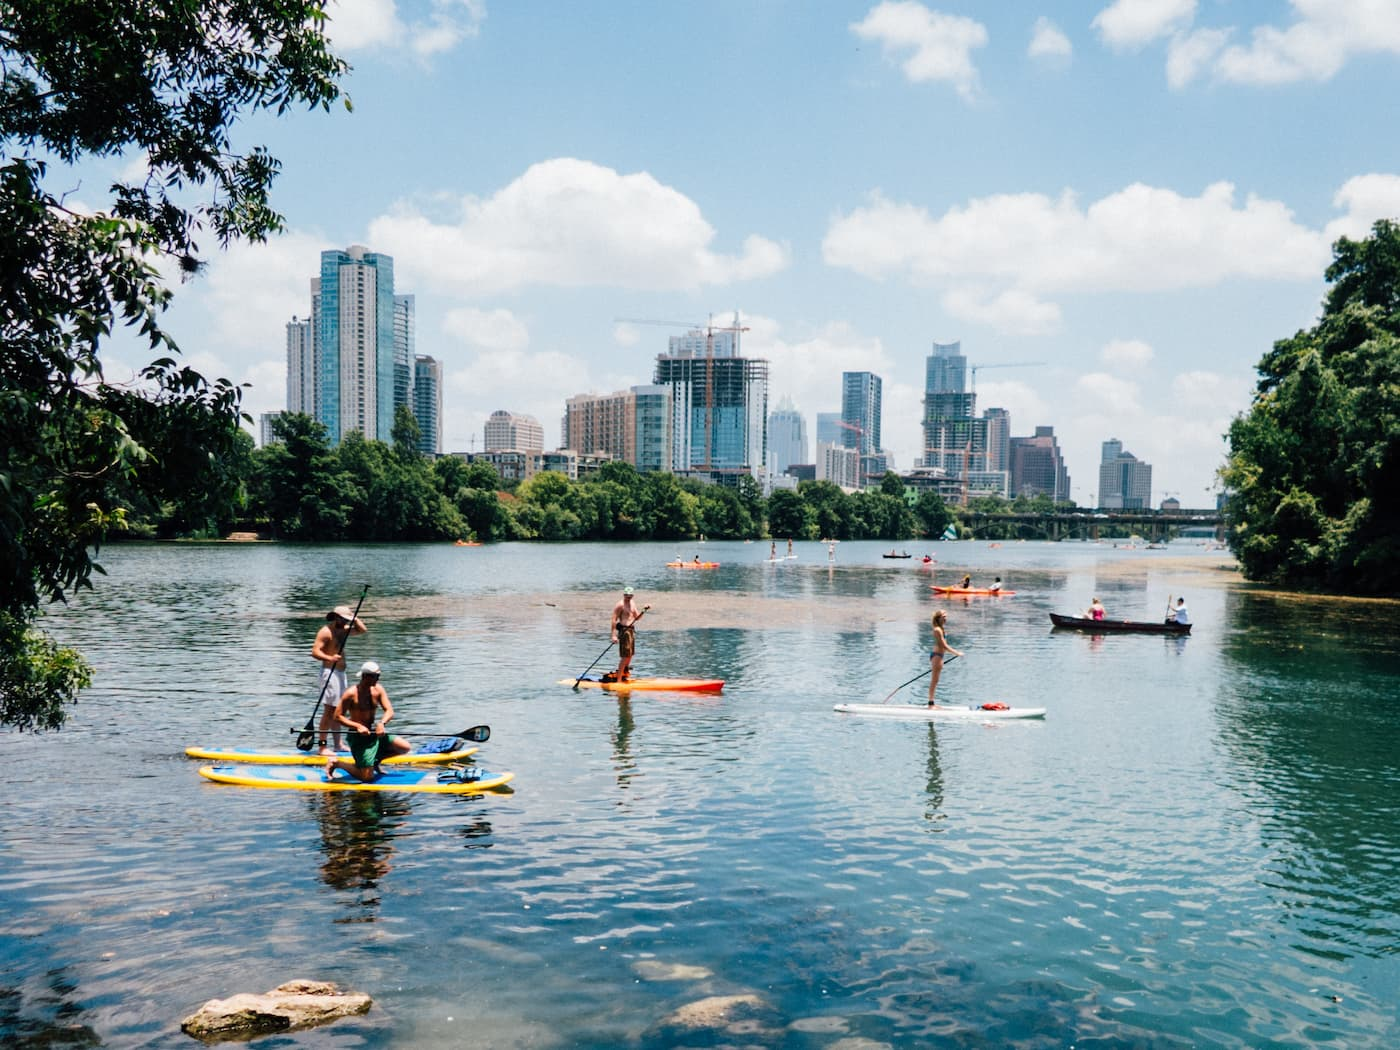 Austin a hot market to invest in real estate